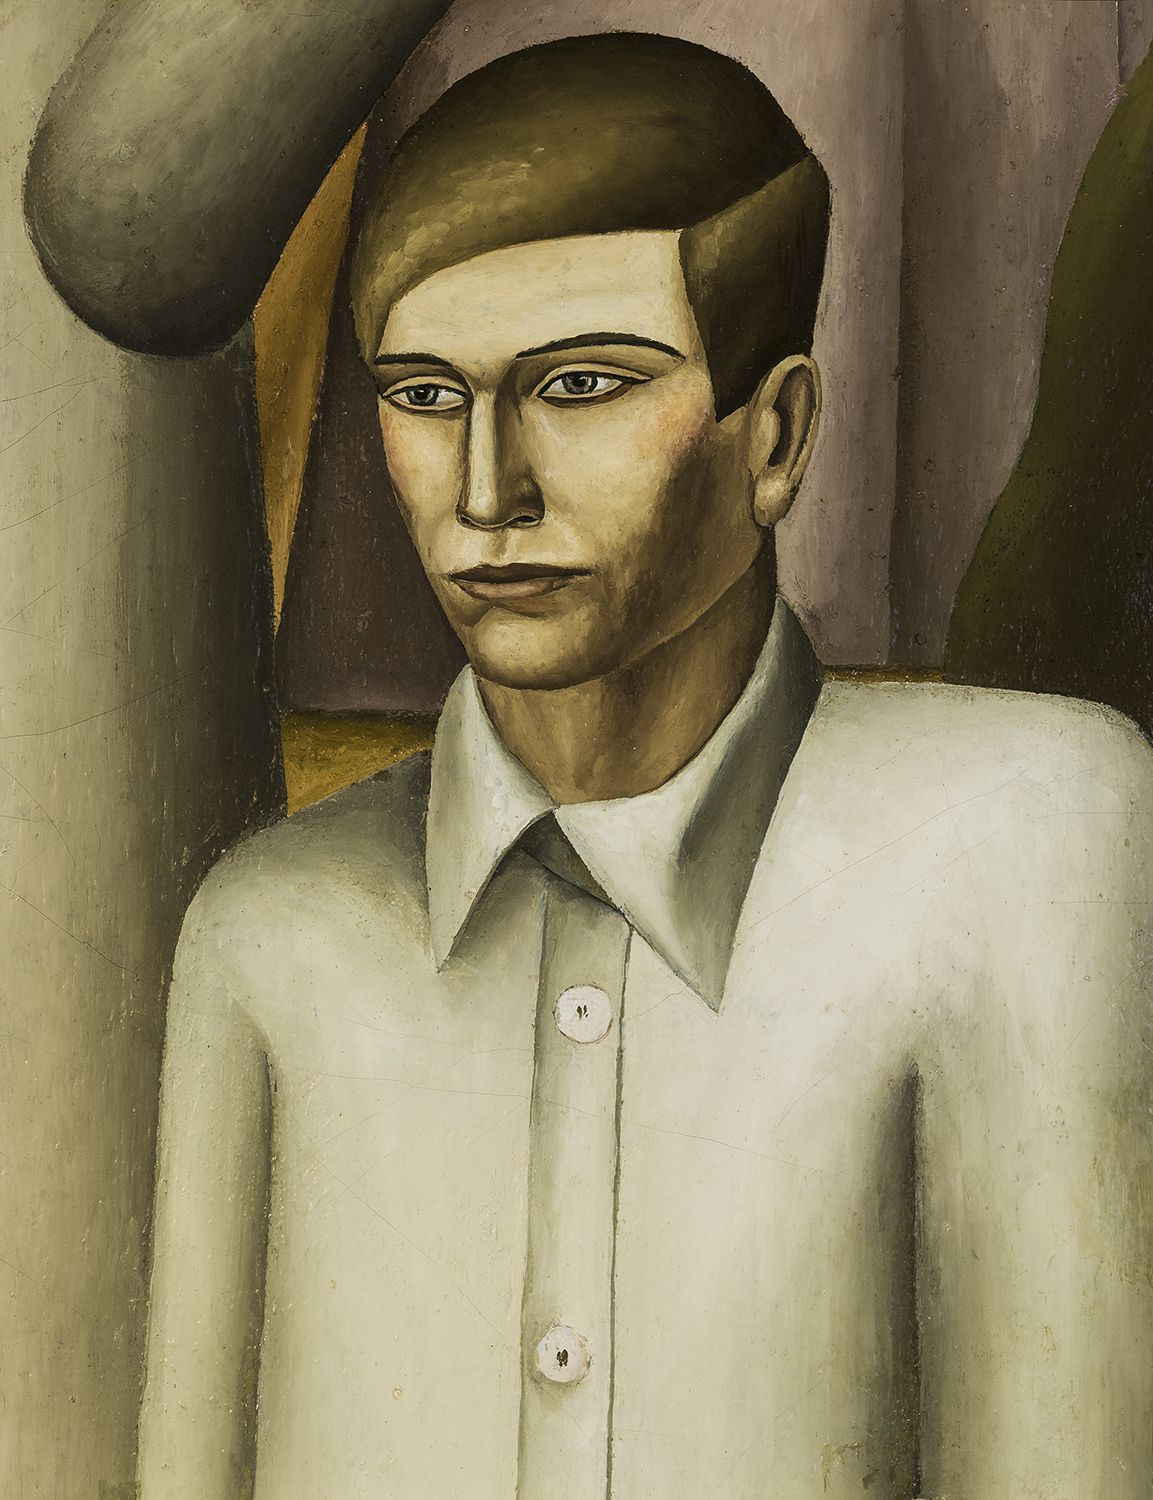 Self-Portrait, 1930, Oil on canvas, 11 1/2 x 9 in.